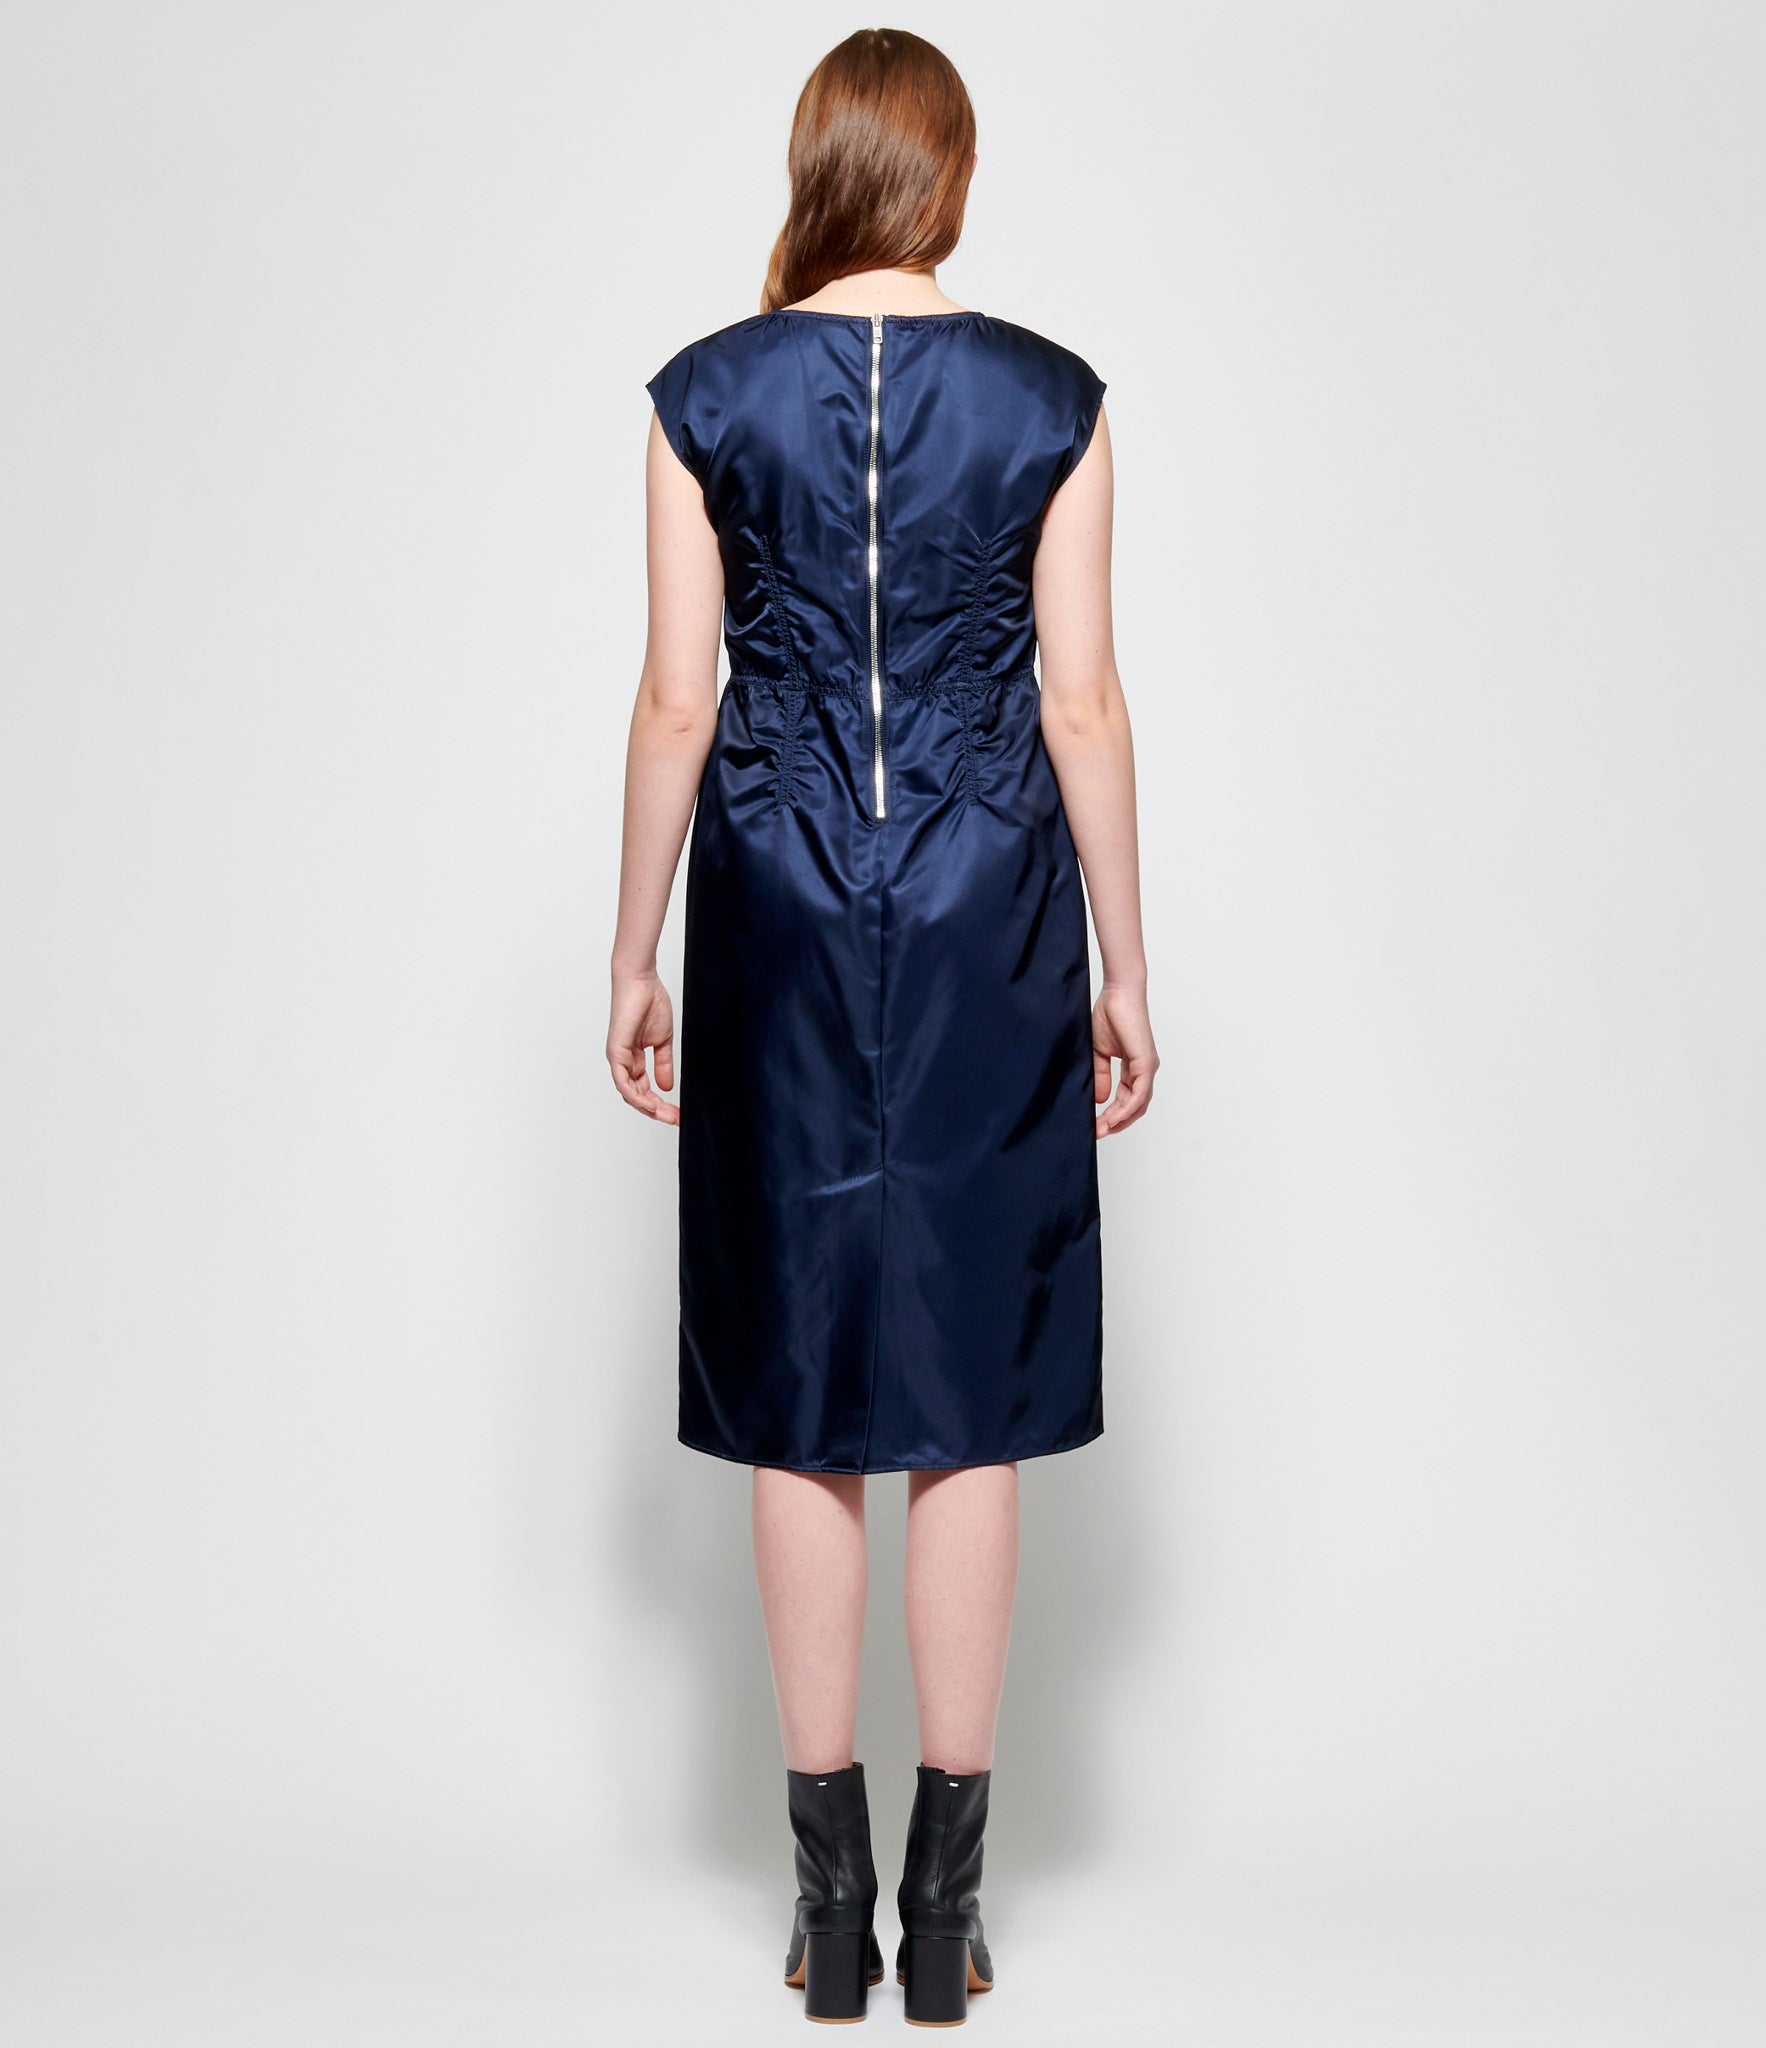 Maison Margiela Satin Technique Dress